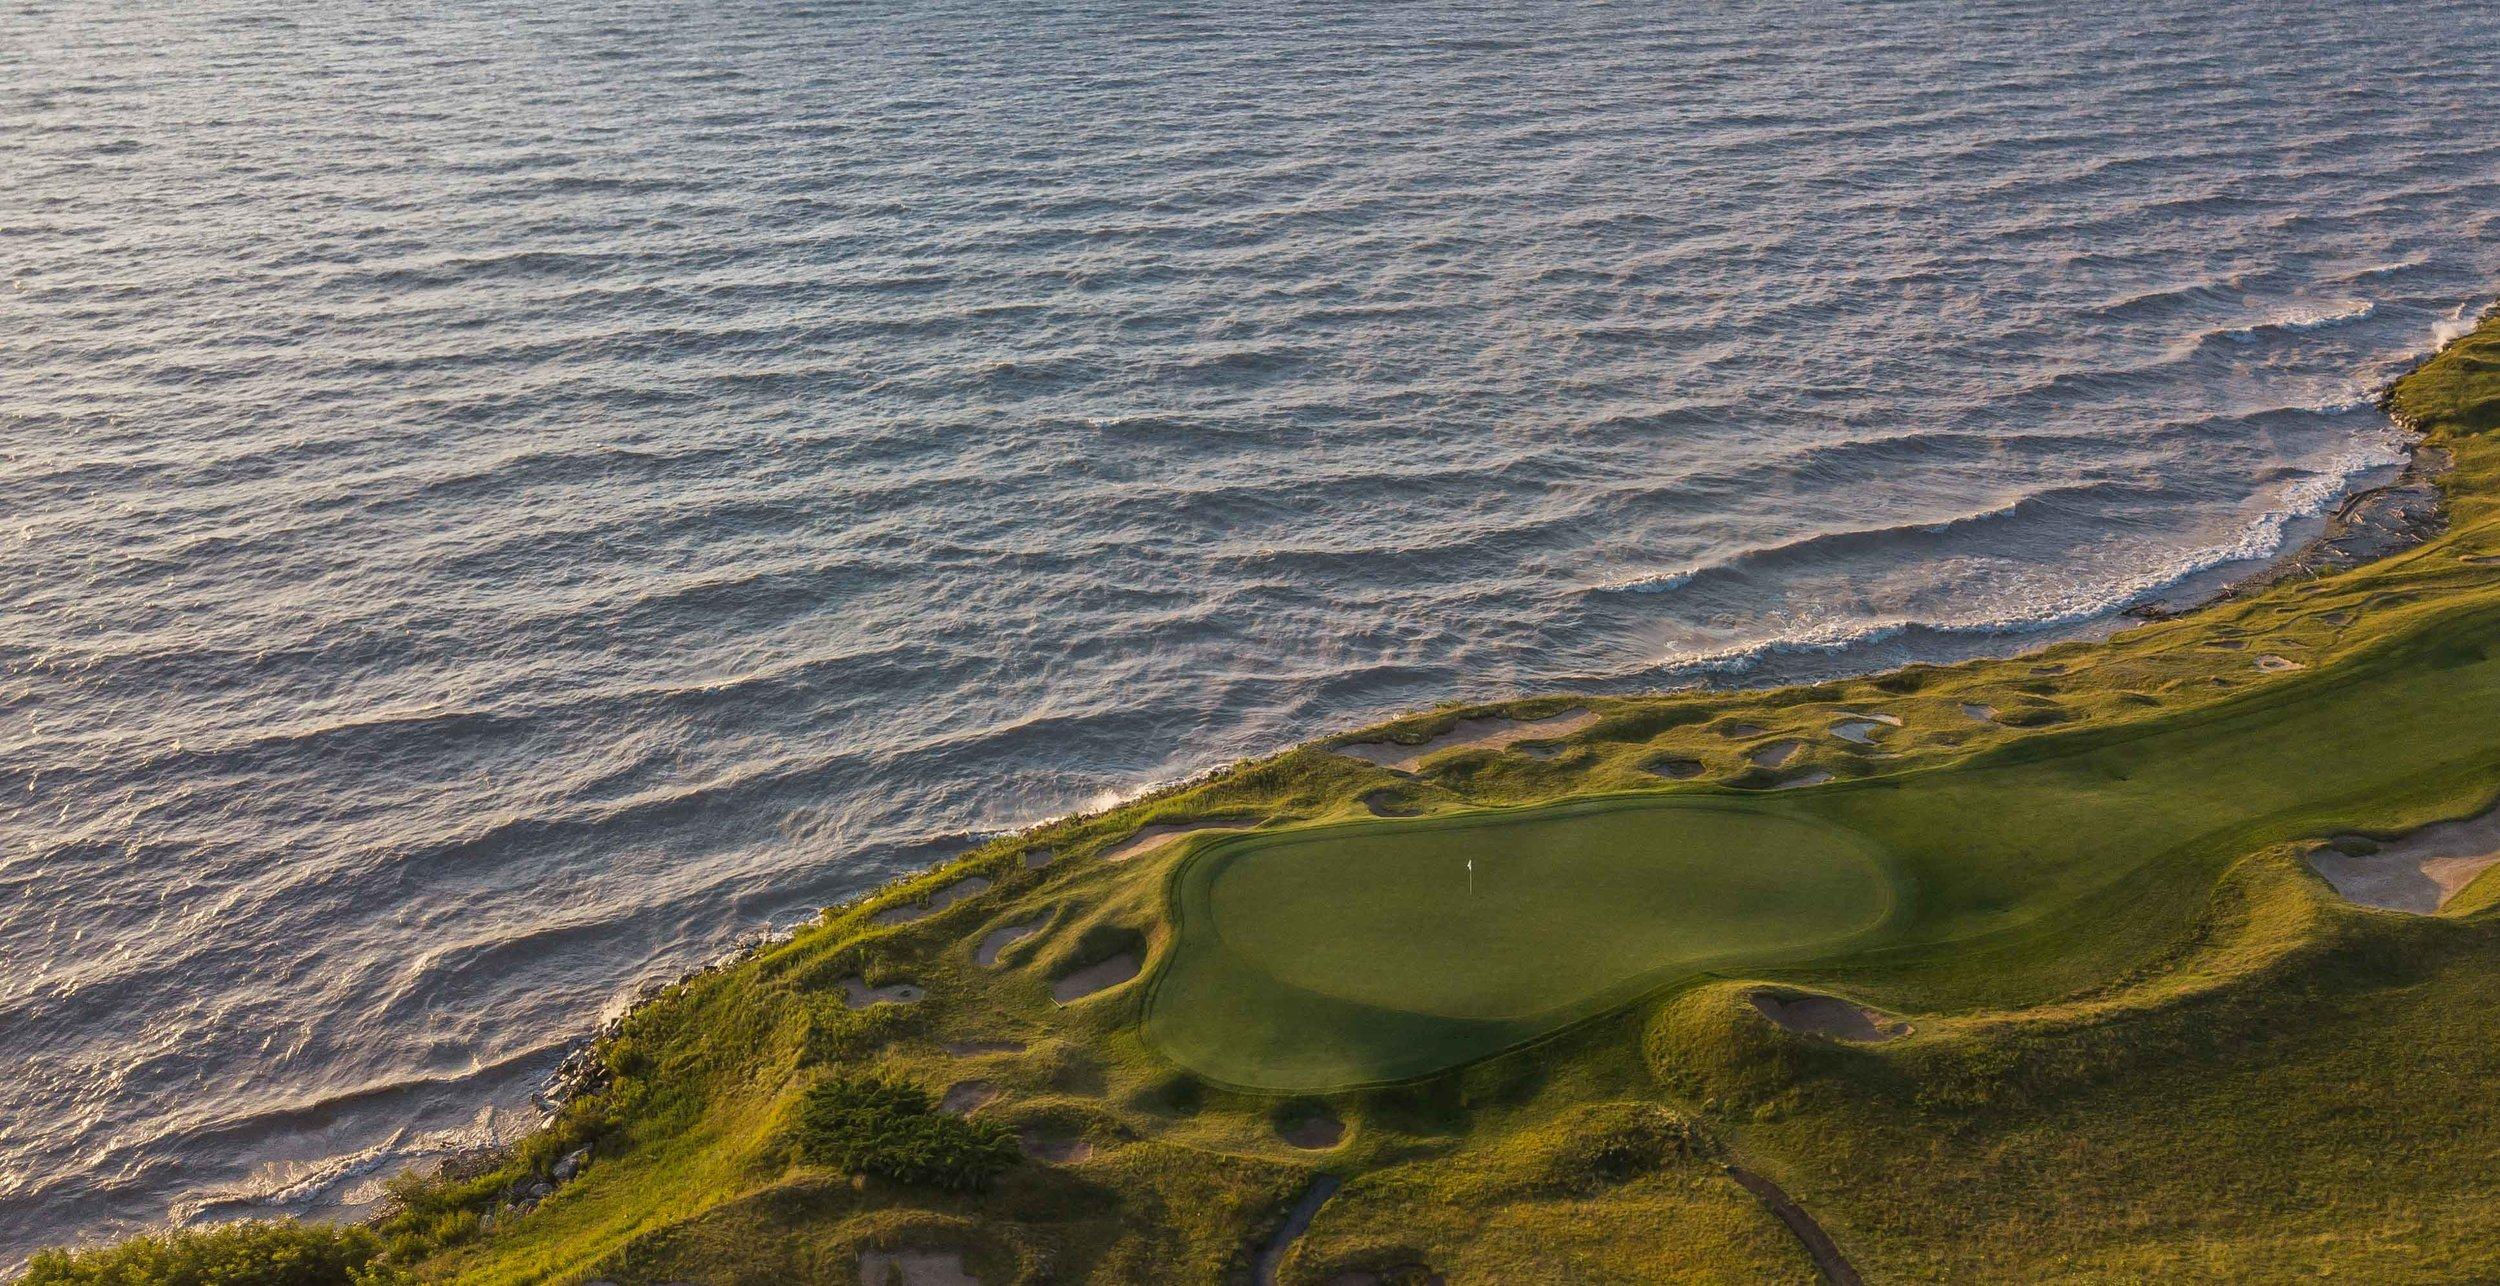 The 8th hole at Whistling Straits